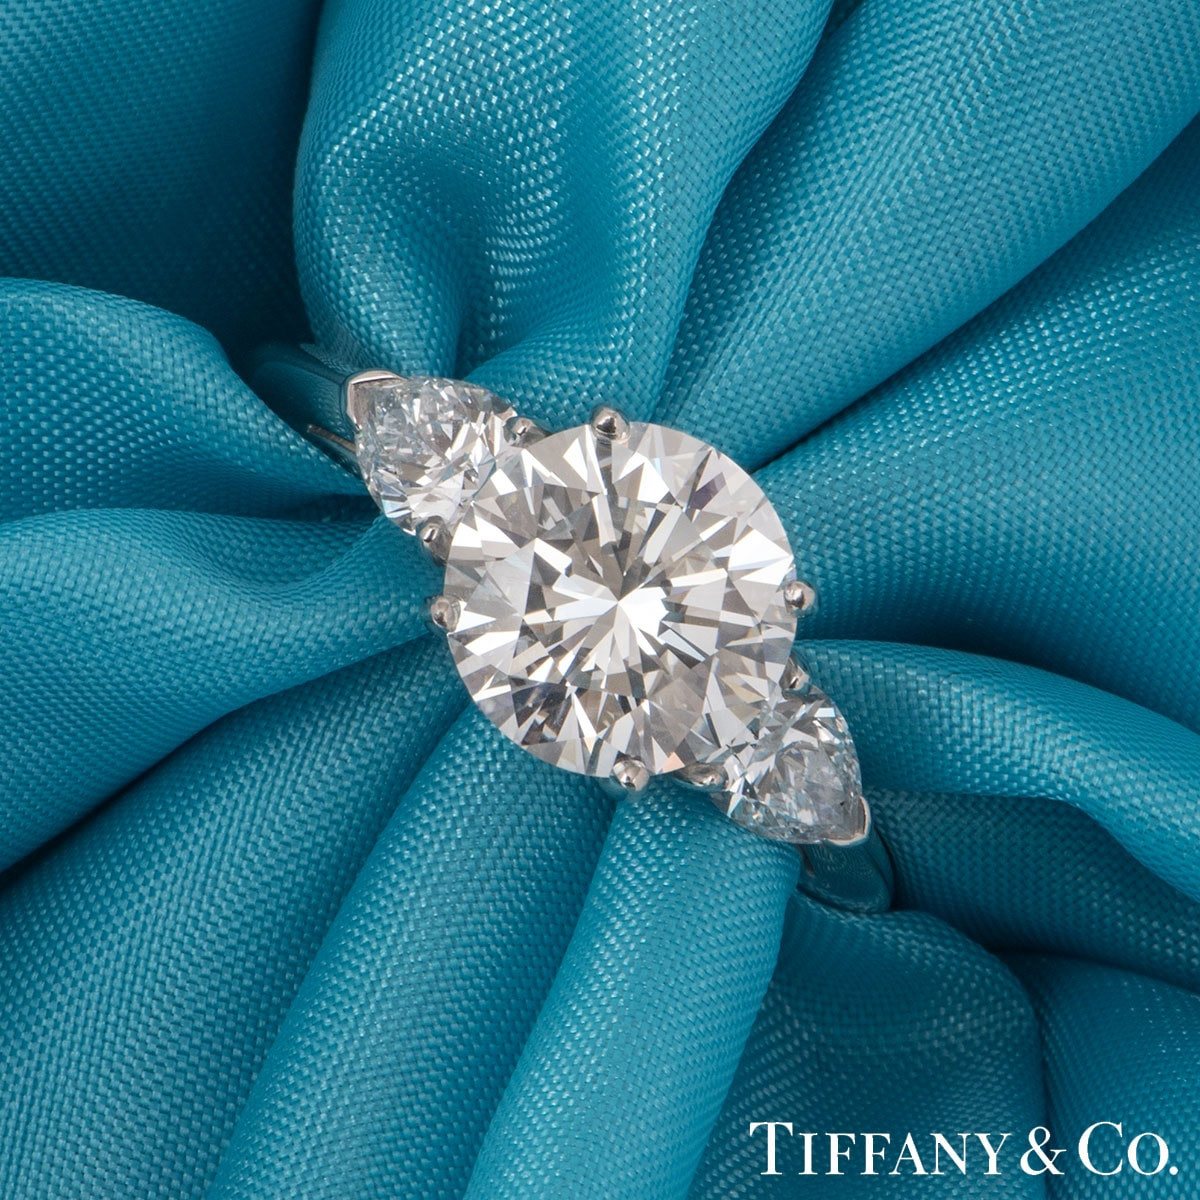 Tiffany & Co. Platinum Diamond Three Stone Ring